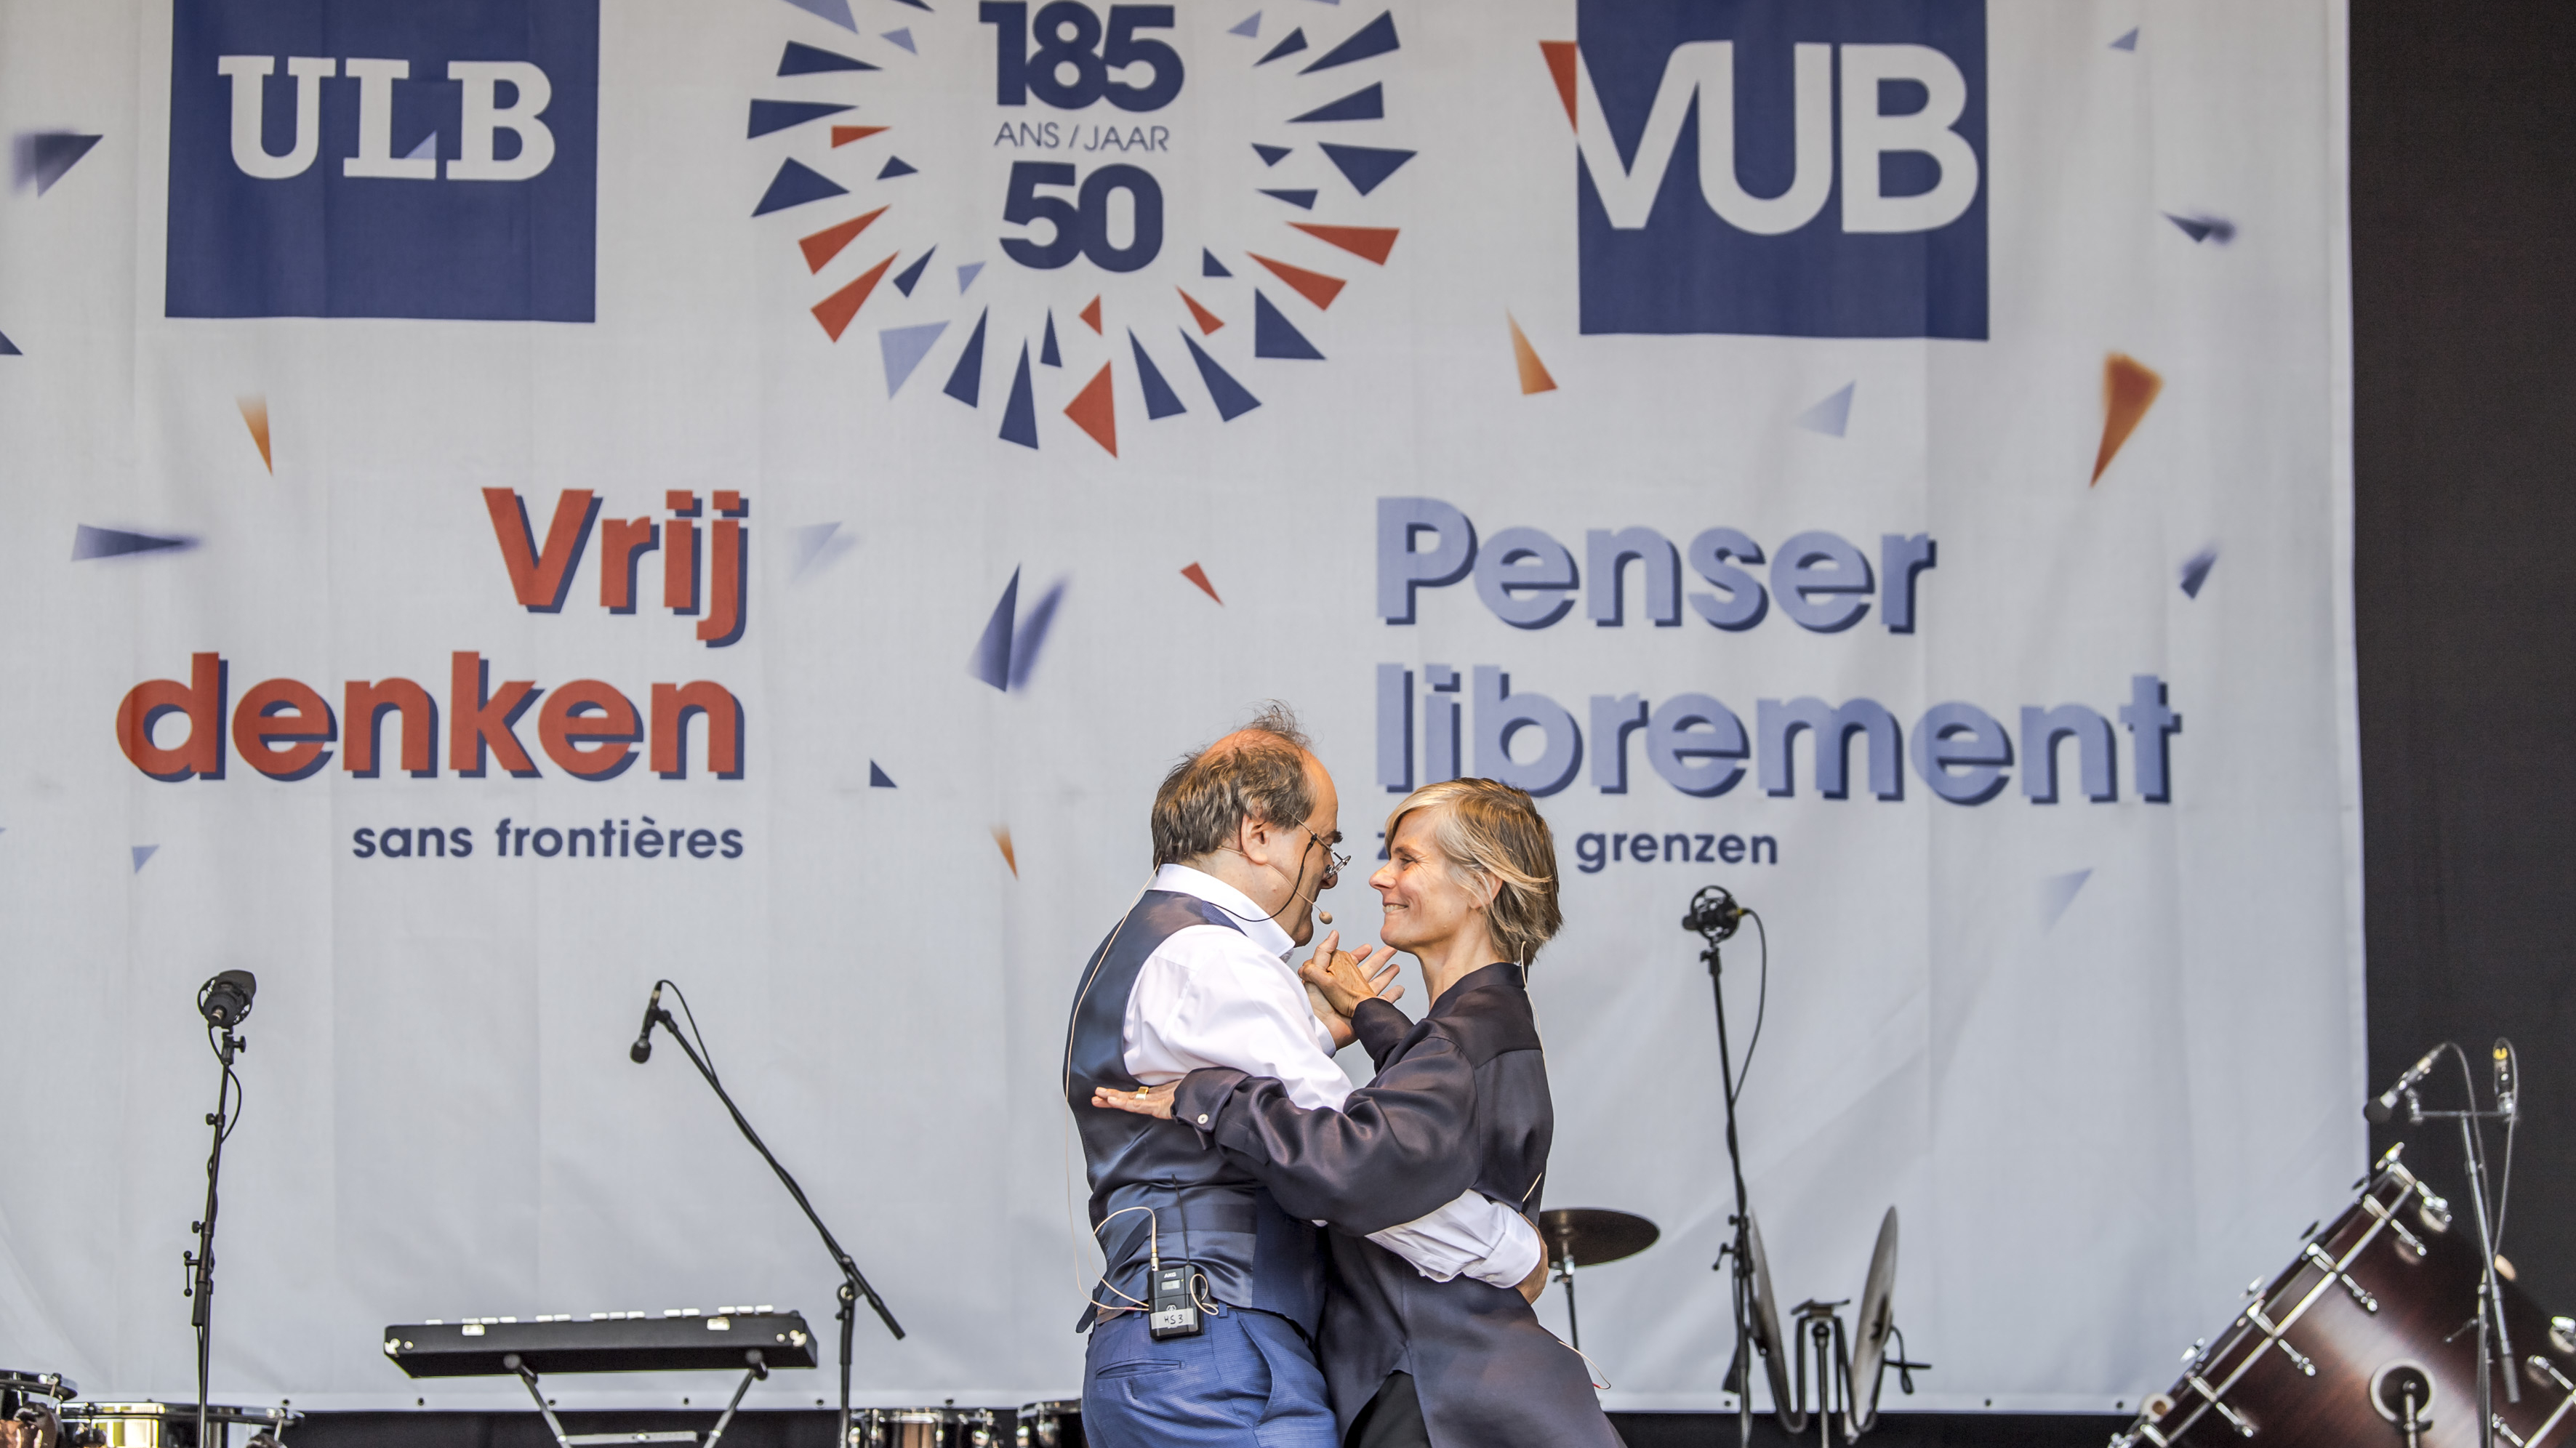 Vub And Ulb Start Academic Year Together With Plea For Closer Cooperation Between Communities Vub 50j Ulb 185j